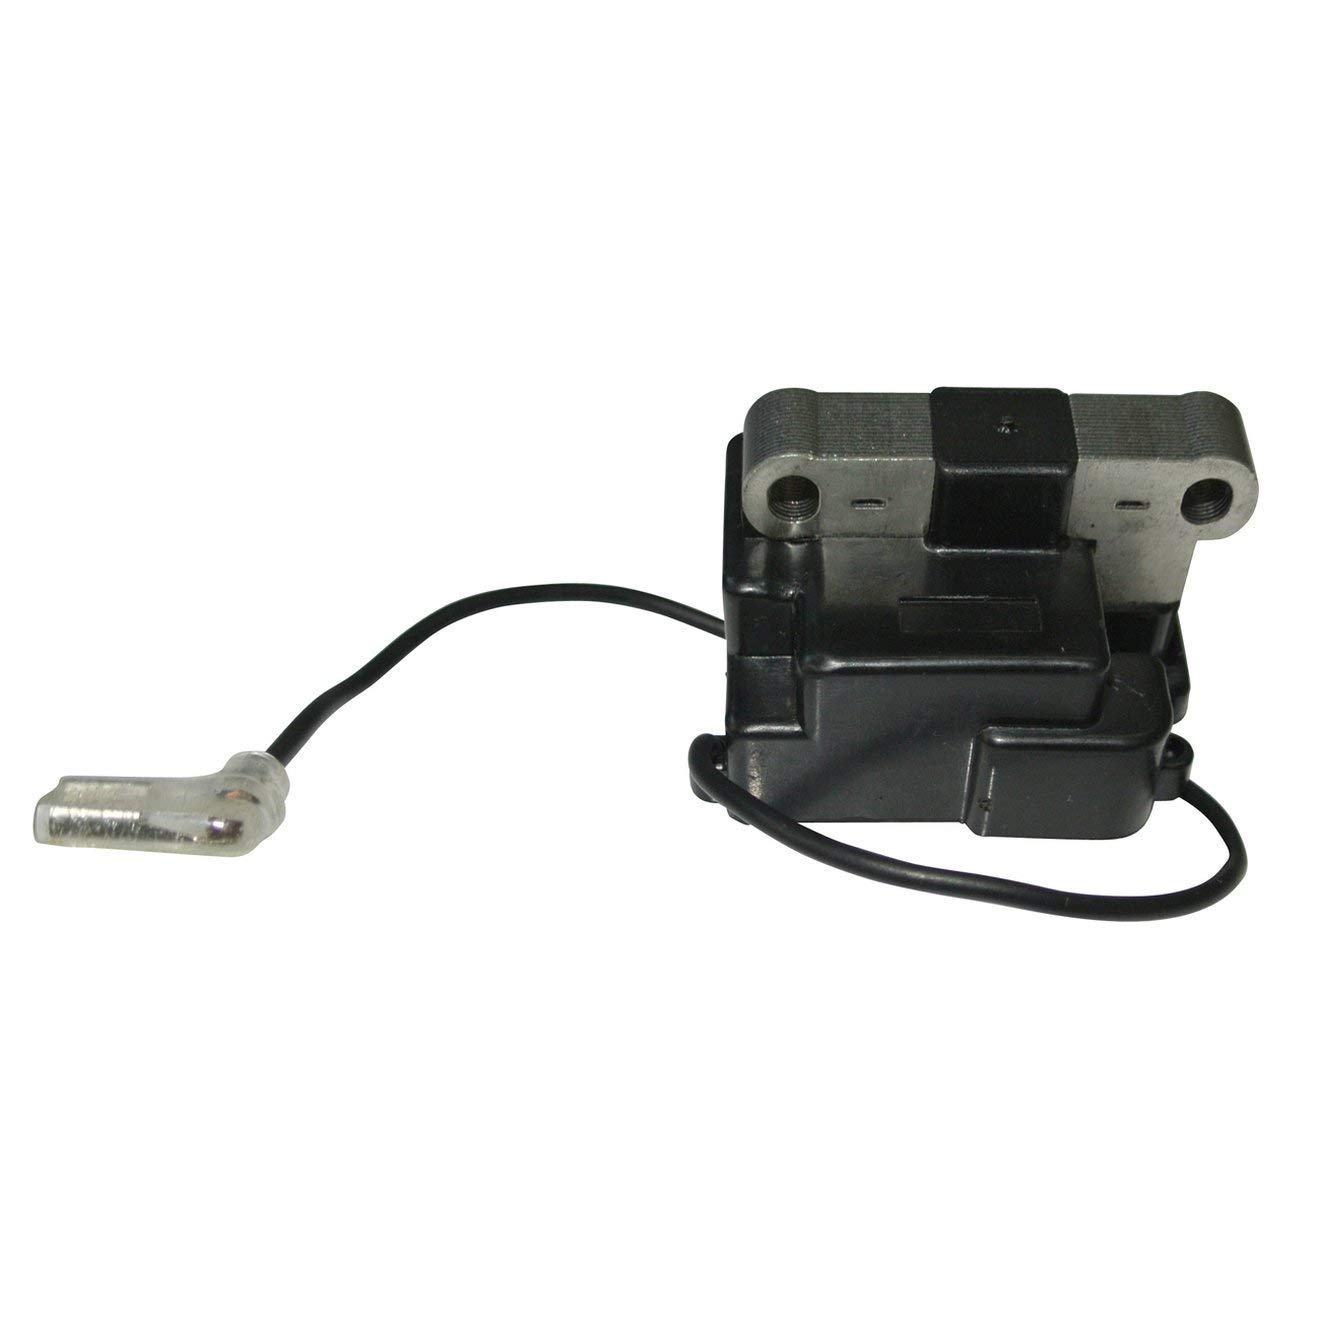 2eef736bf13c Get Quotations · JRL Ignition Coil for 3WF-3 3WF-6 Backpack Sprayer Mist Duster  2 Stroke